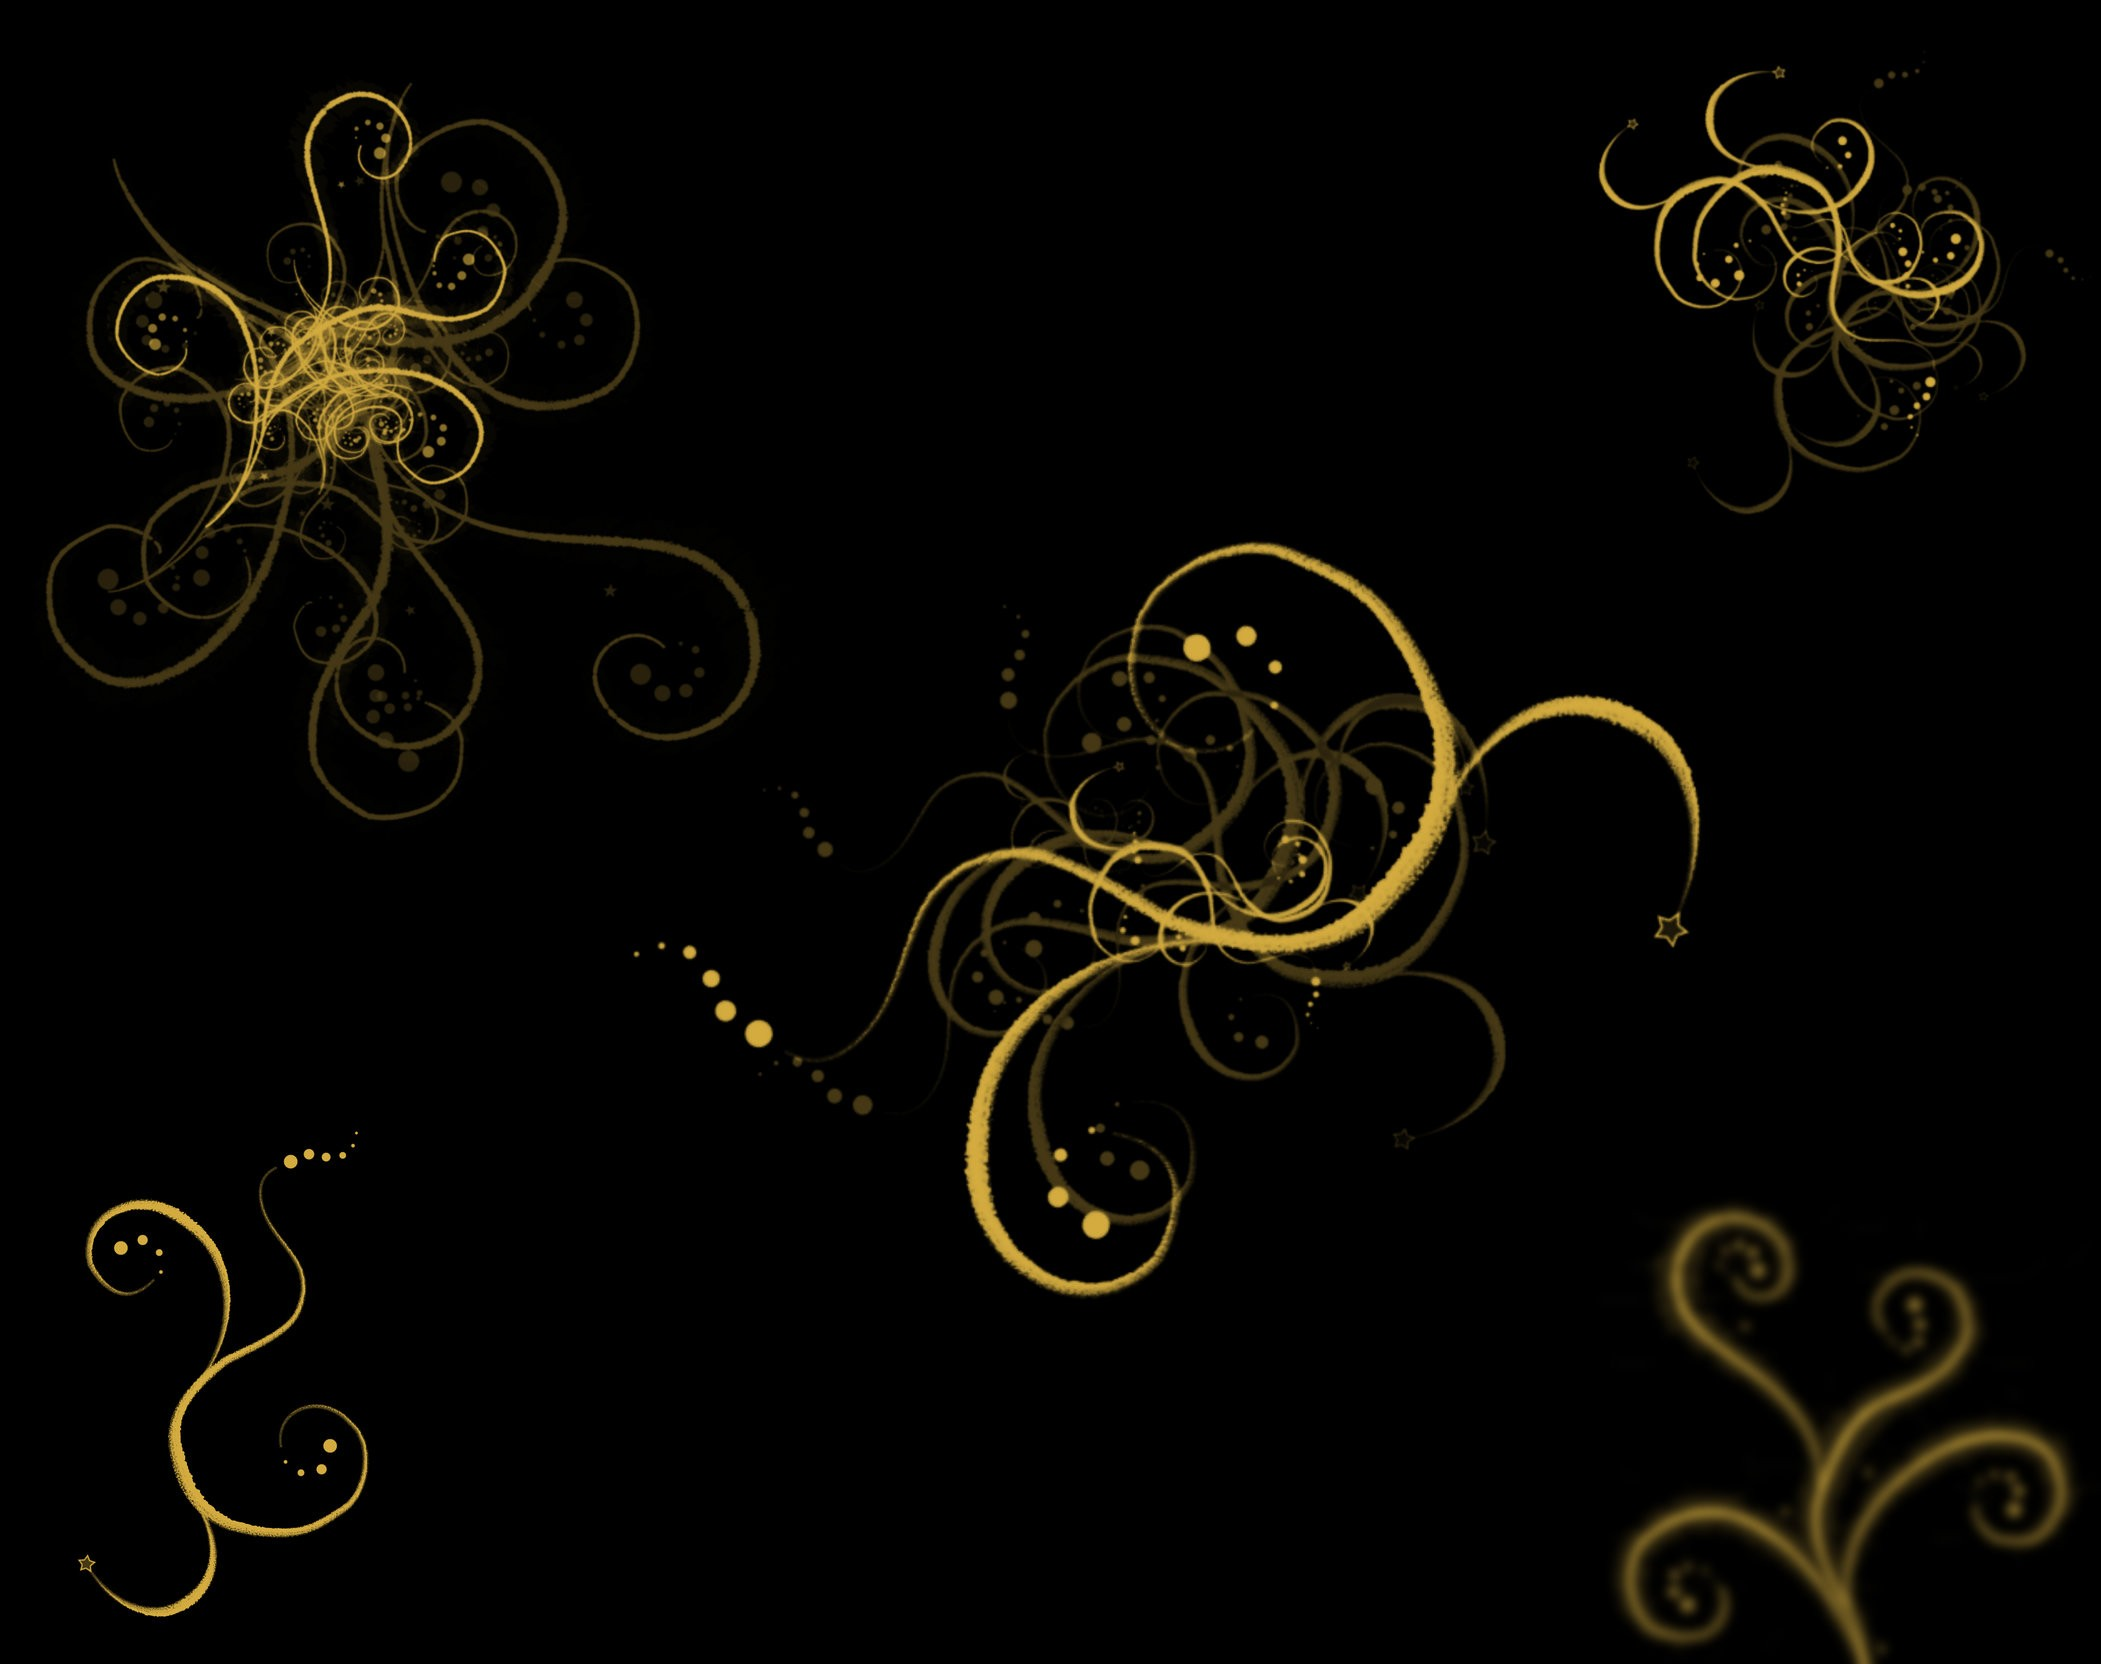 Black And Gold Wallpaper 1 Download Free Cool Full HD Wallpapers